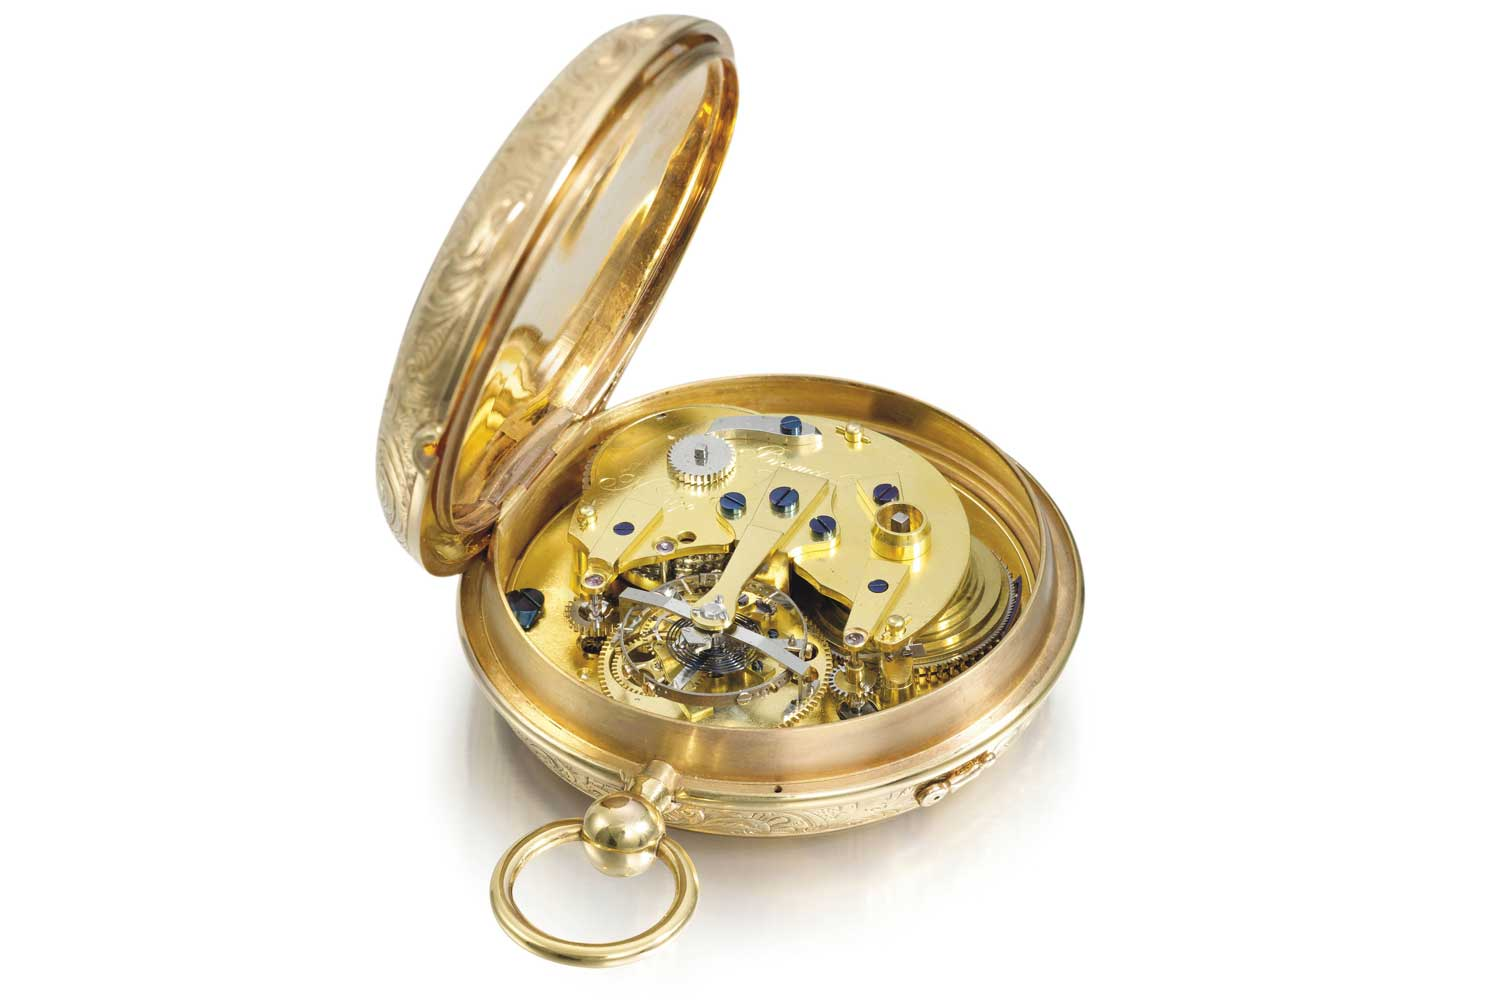 One of the first tourbillons by Abraham-Louis Breguet